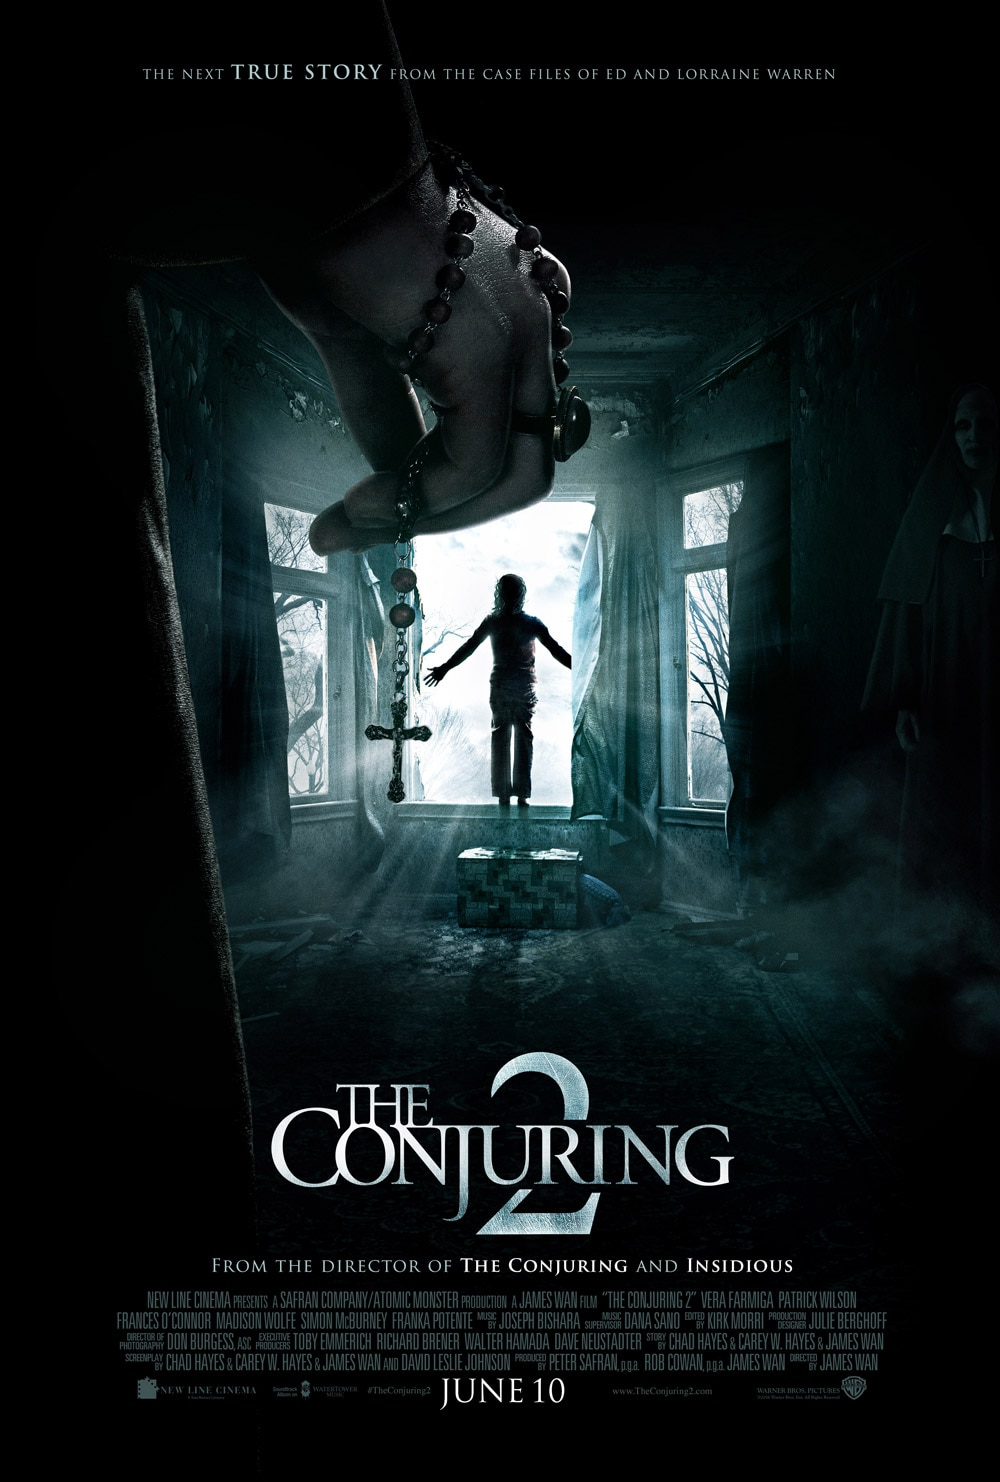 the conjuring 2 - The Conjuring - Video Interviews With Vera Farmiga, Patrick Wilson, James Wan and More!